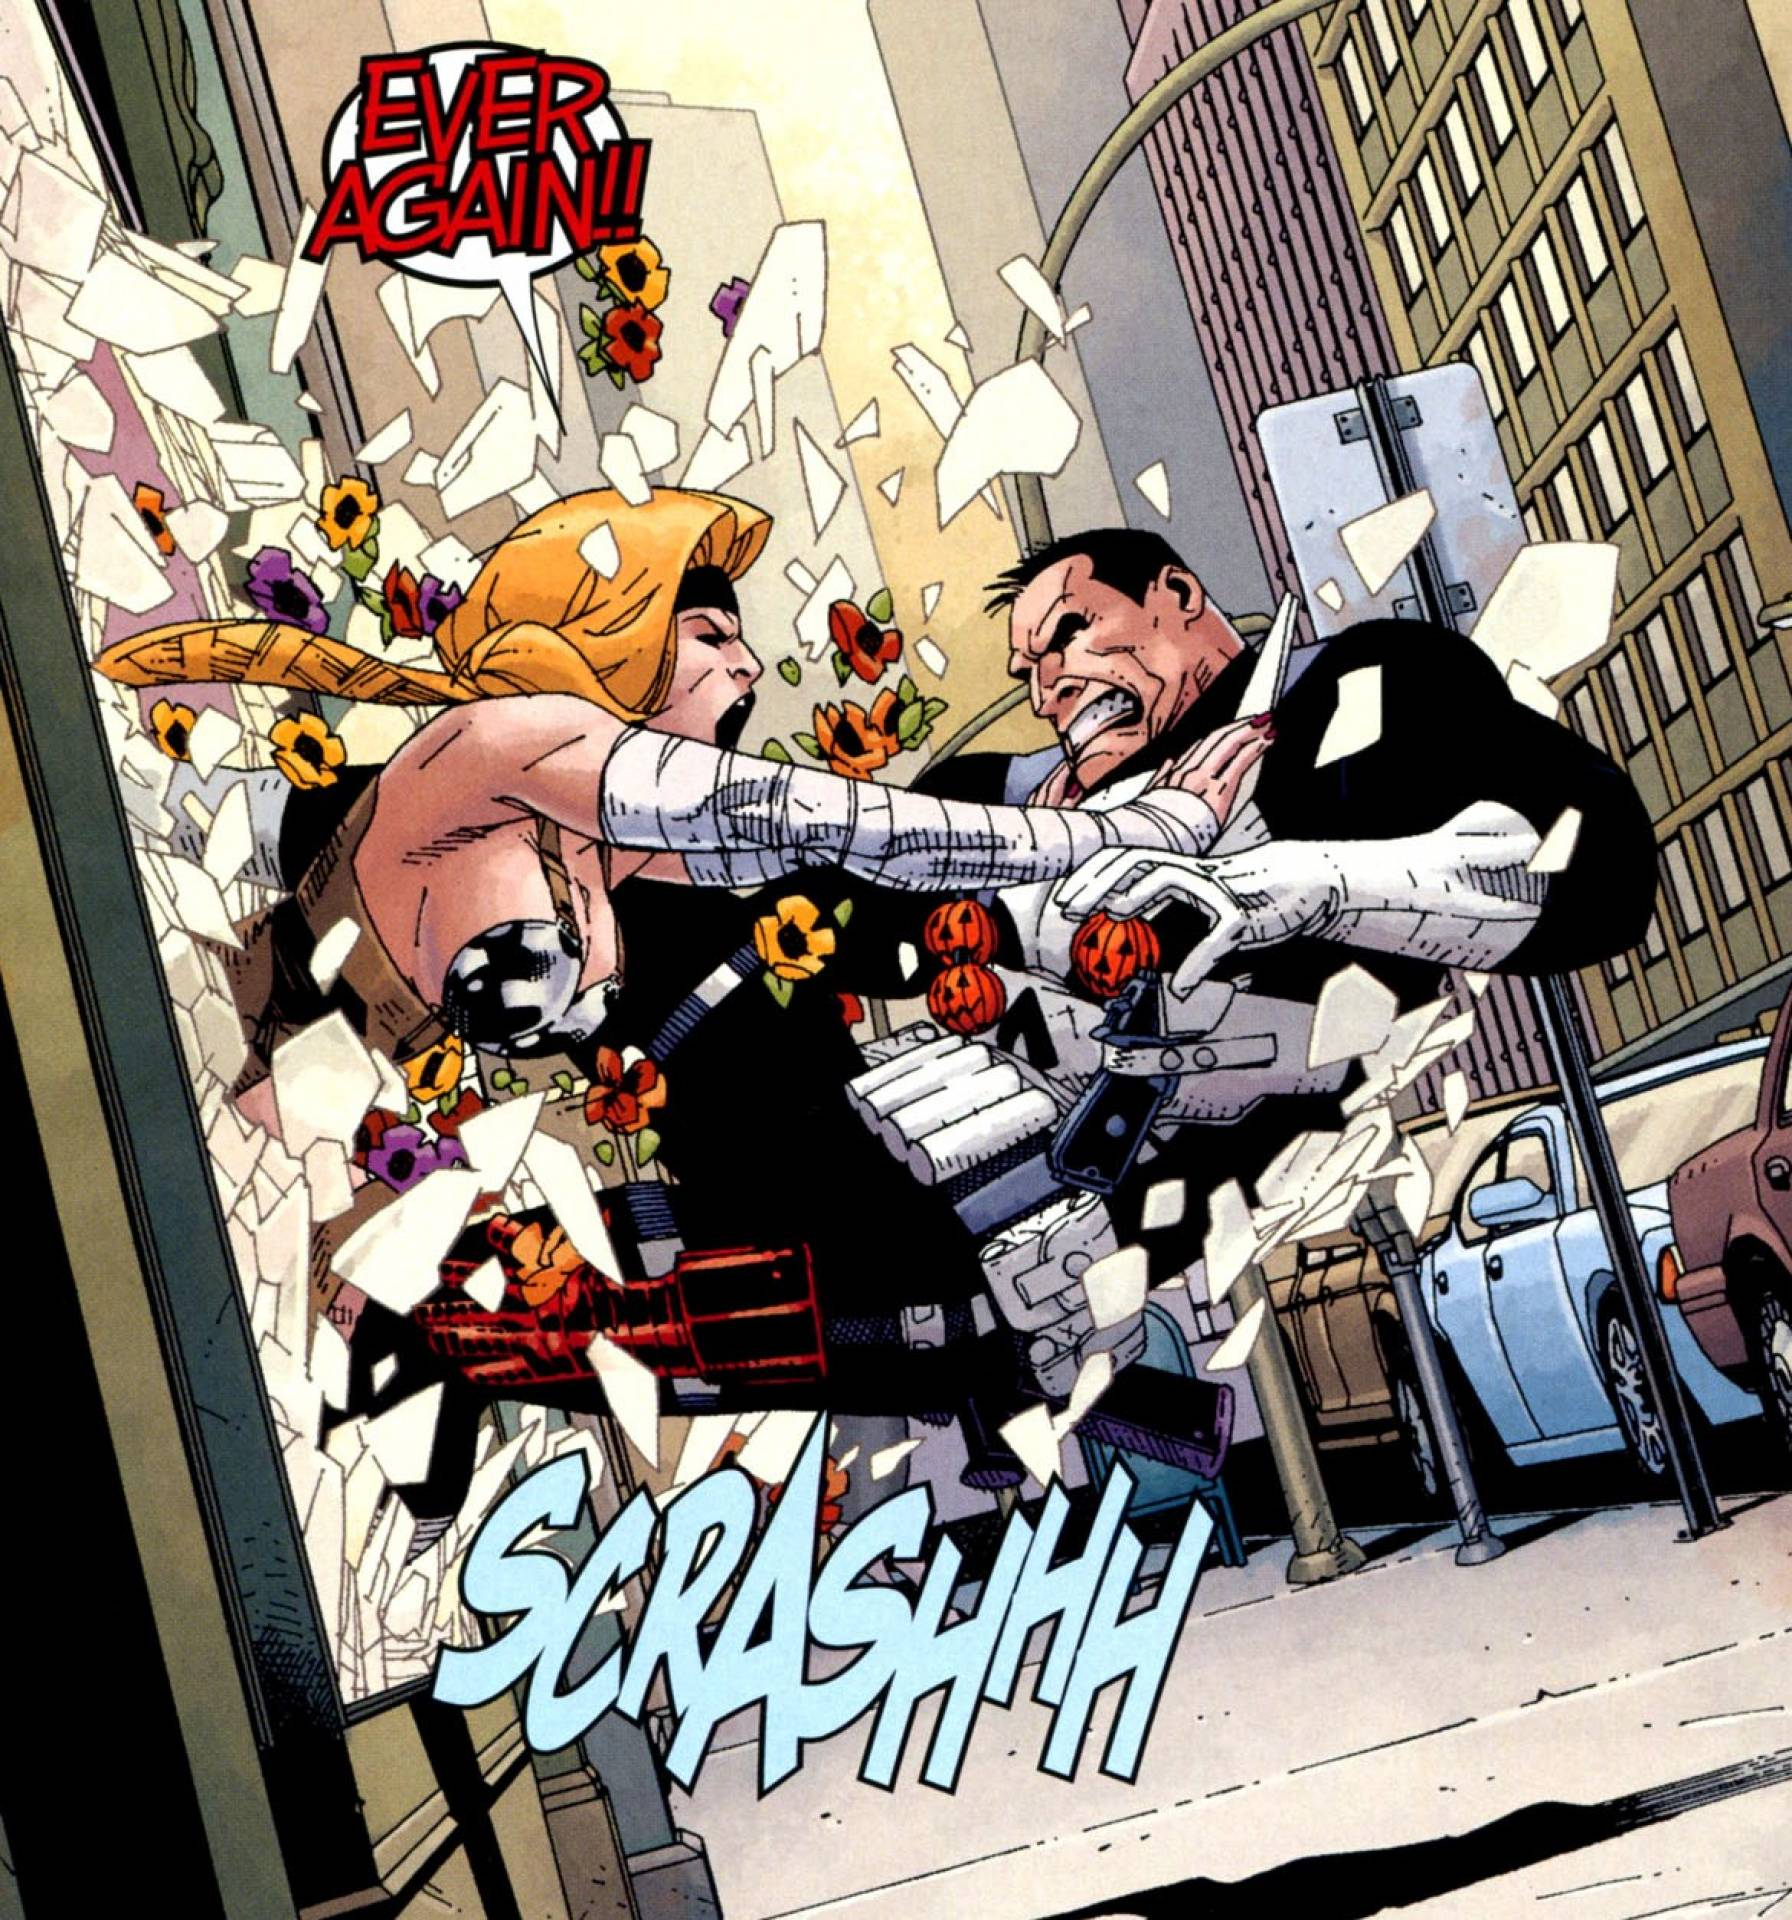 Letha fighting the Punisher